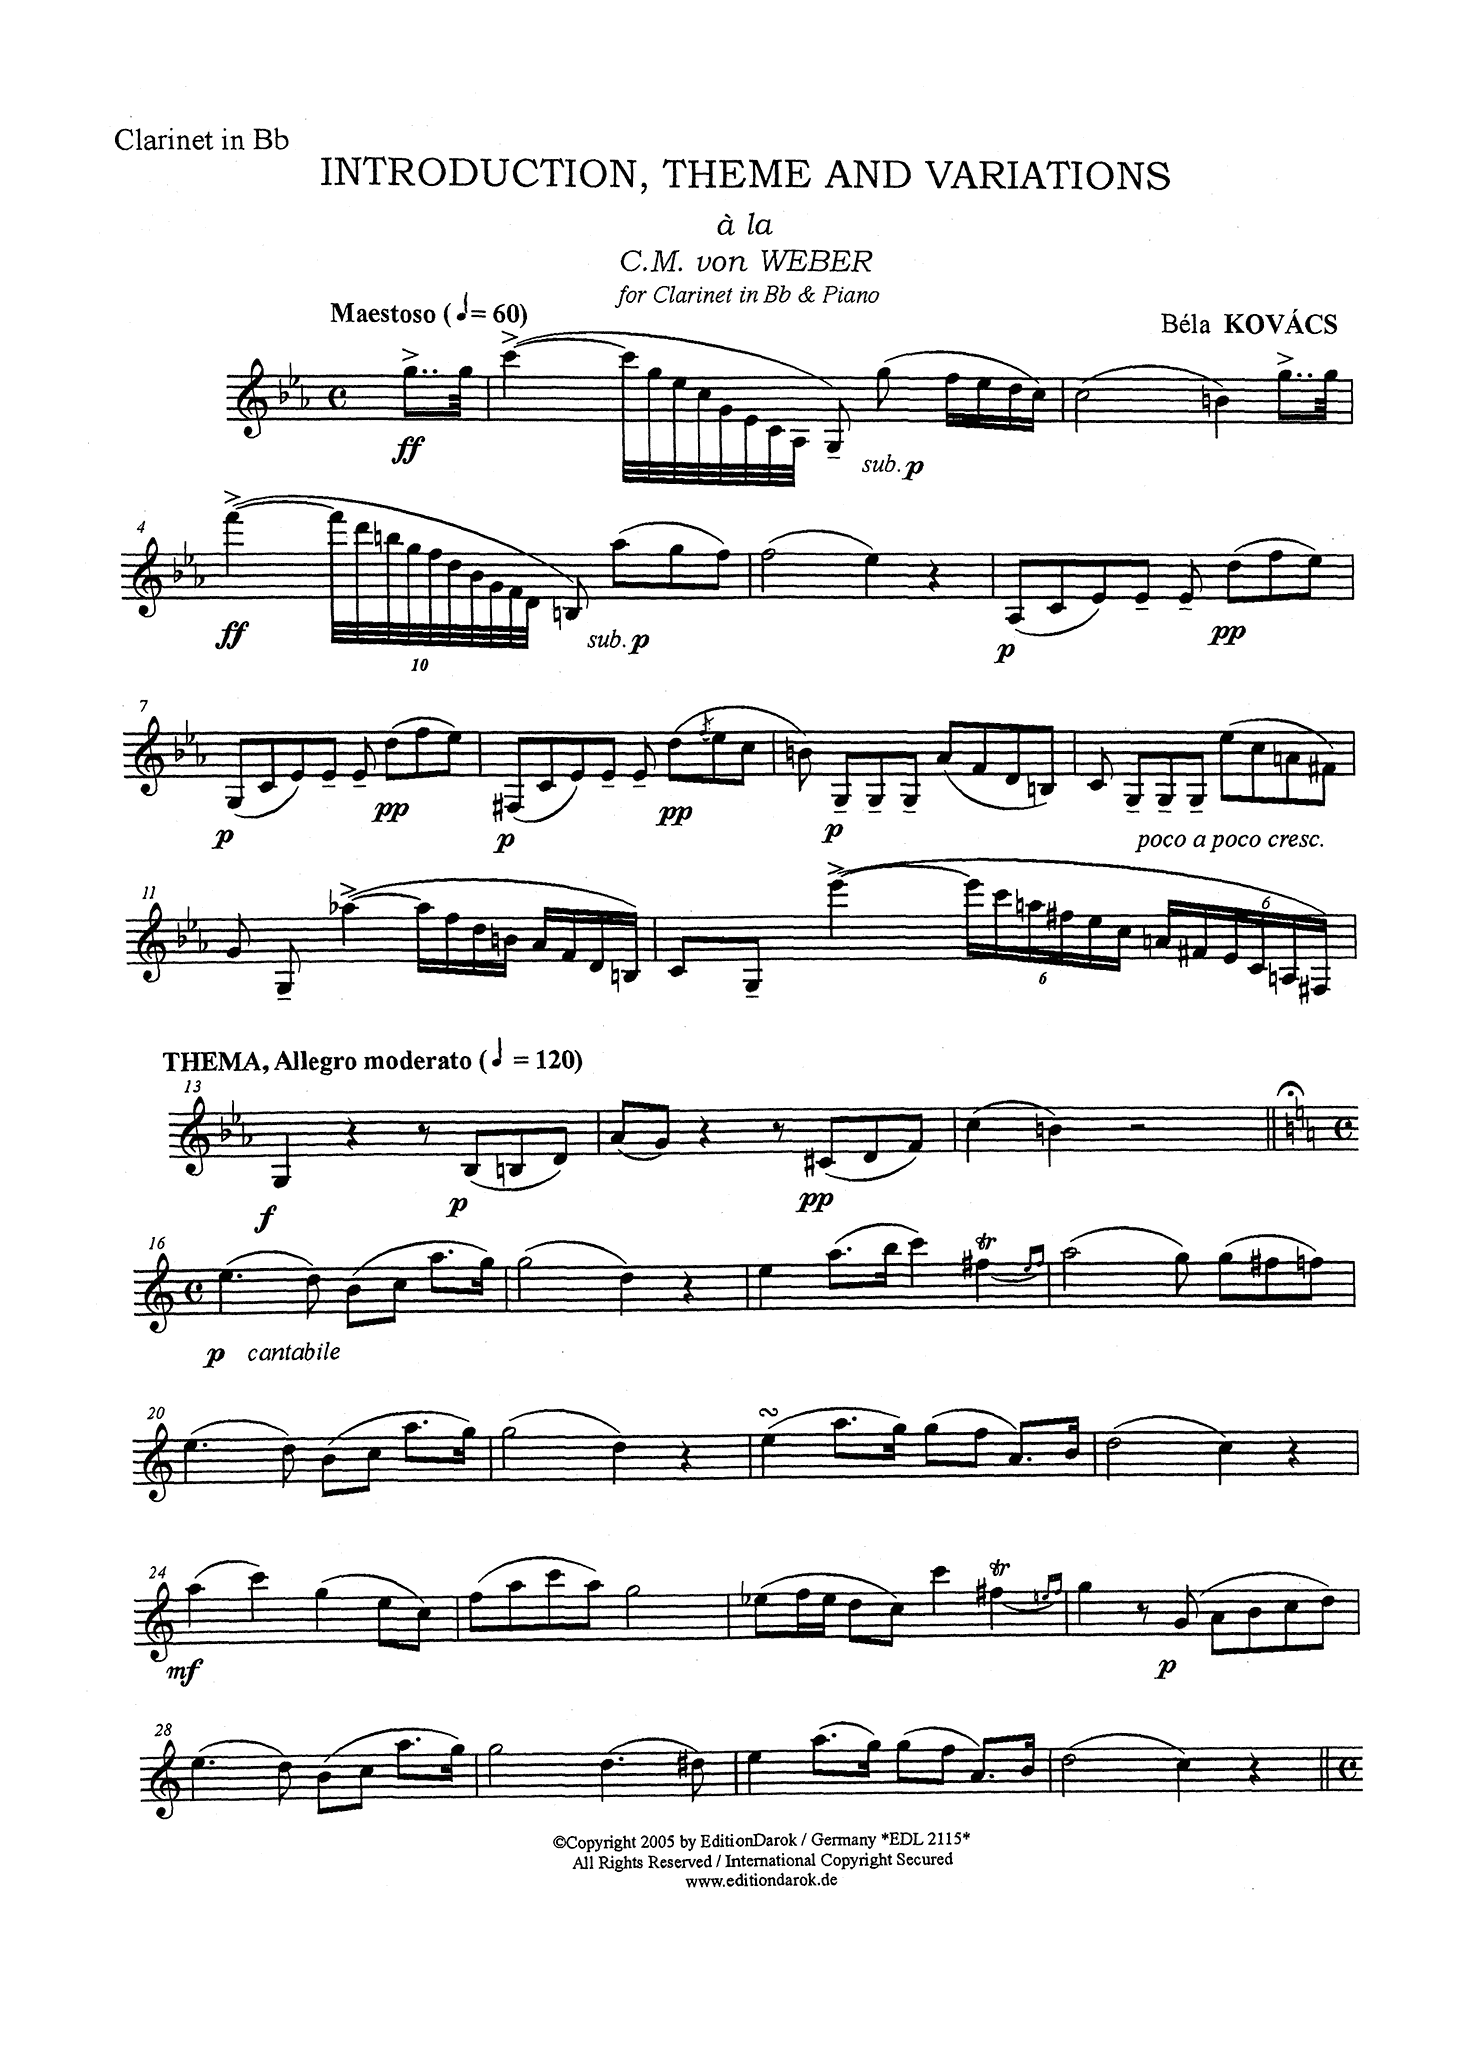 Kovács Hommage à Weber arrangement with piano accompaniment Clarinet part